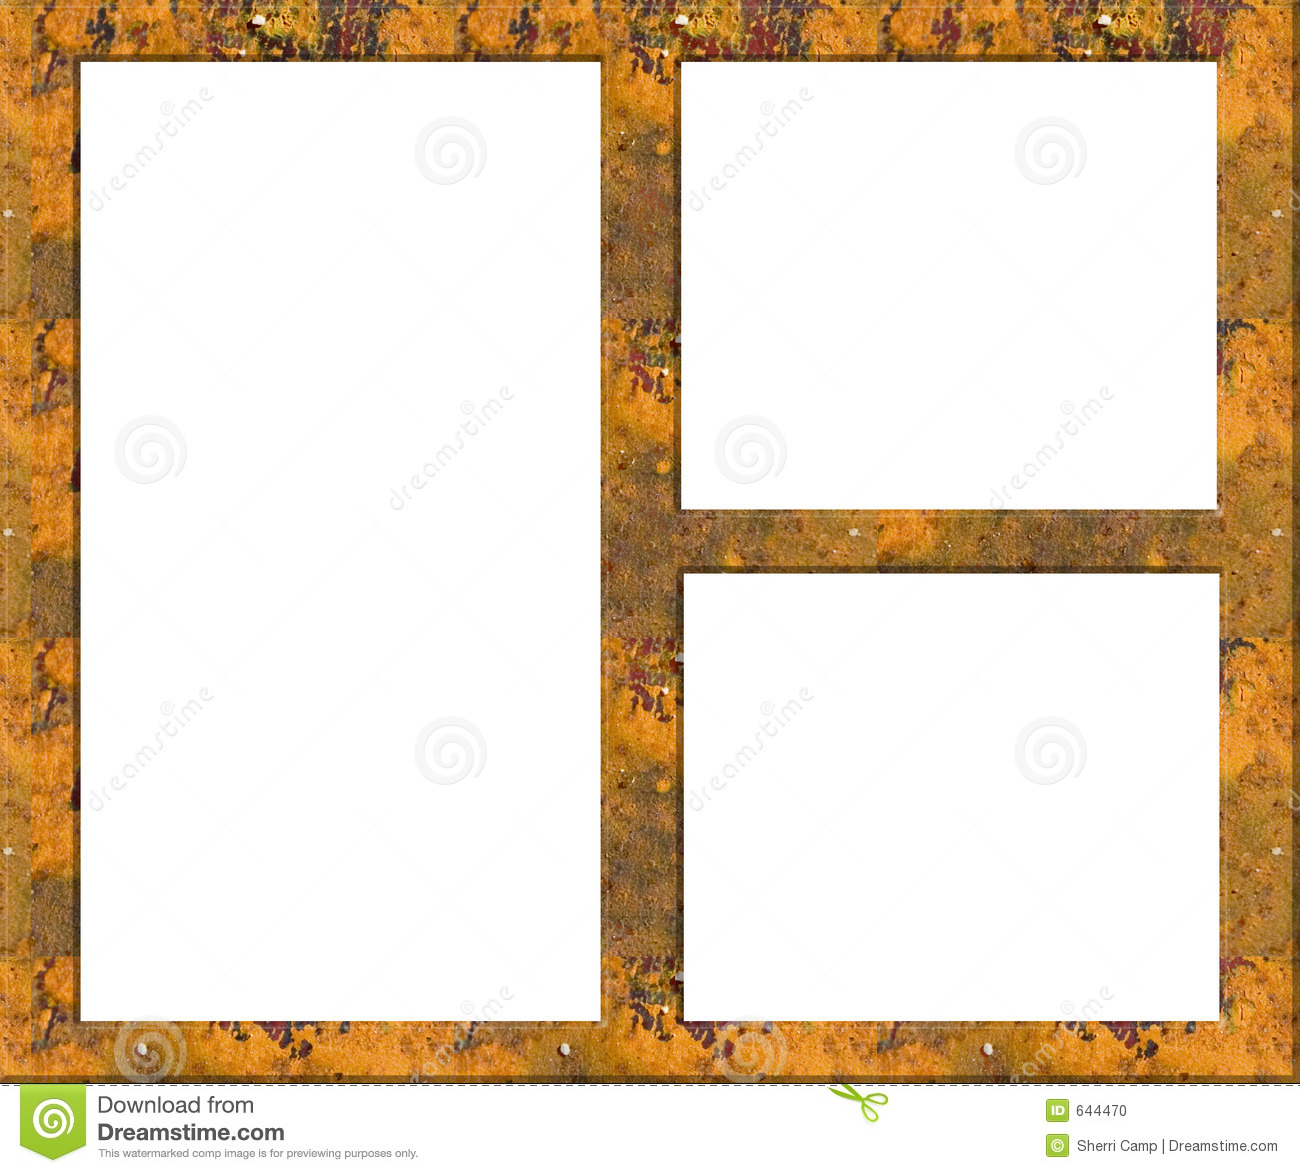 Rusted Metal Grunge Picture Frame - Empty Stock Illustration ...